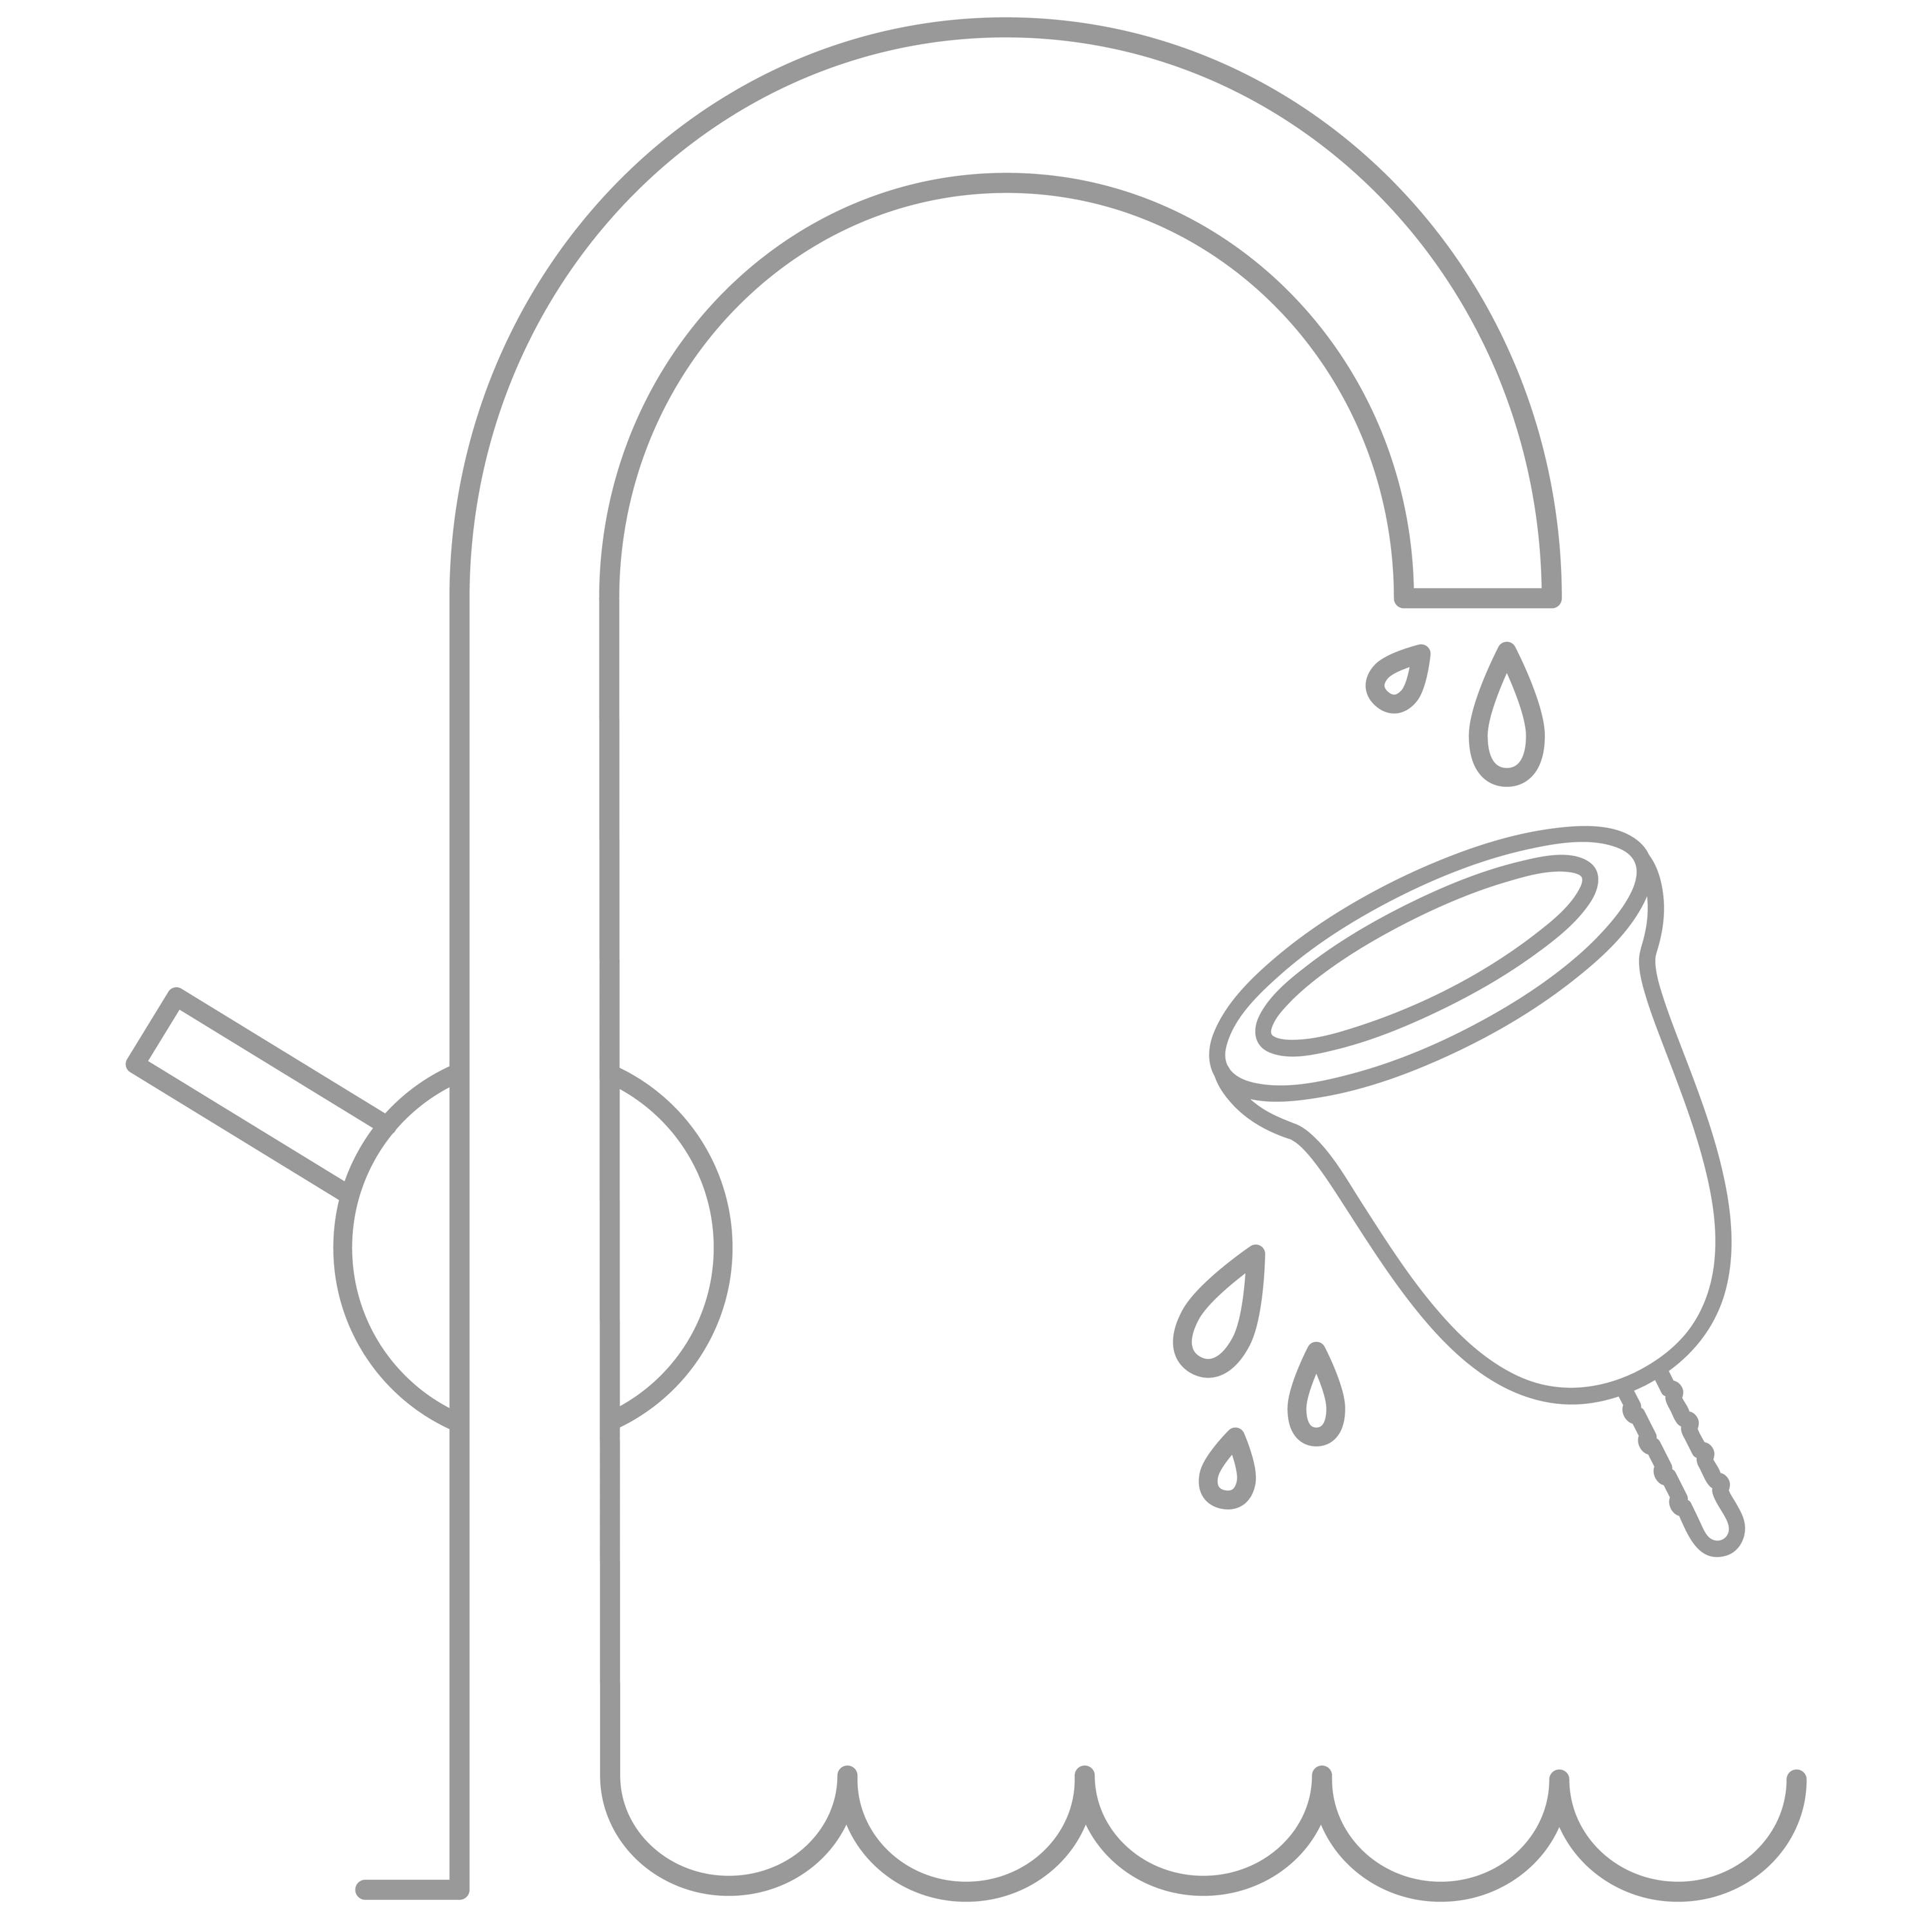 An animated menstrual cup being rinsed below a sink faucet.